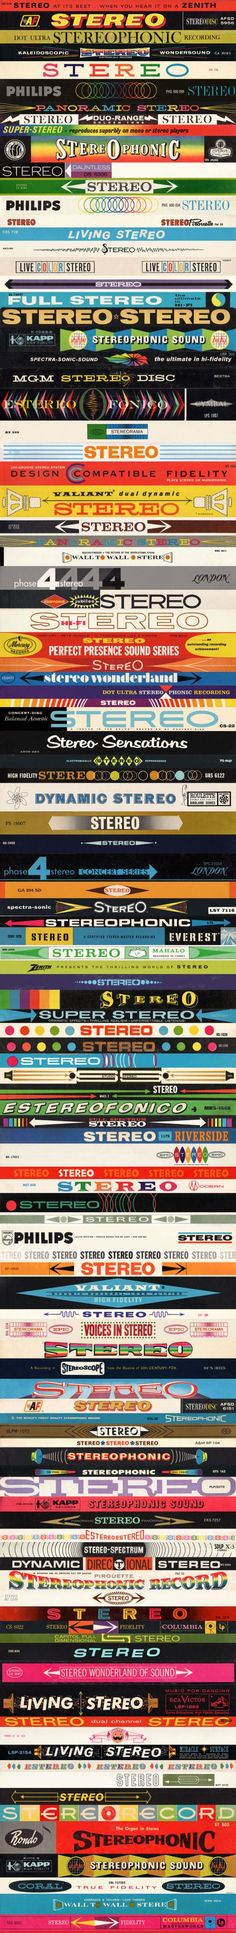 Vintage LP stereo banners stacked by Jive Time Records and Project Thirty-Three